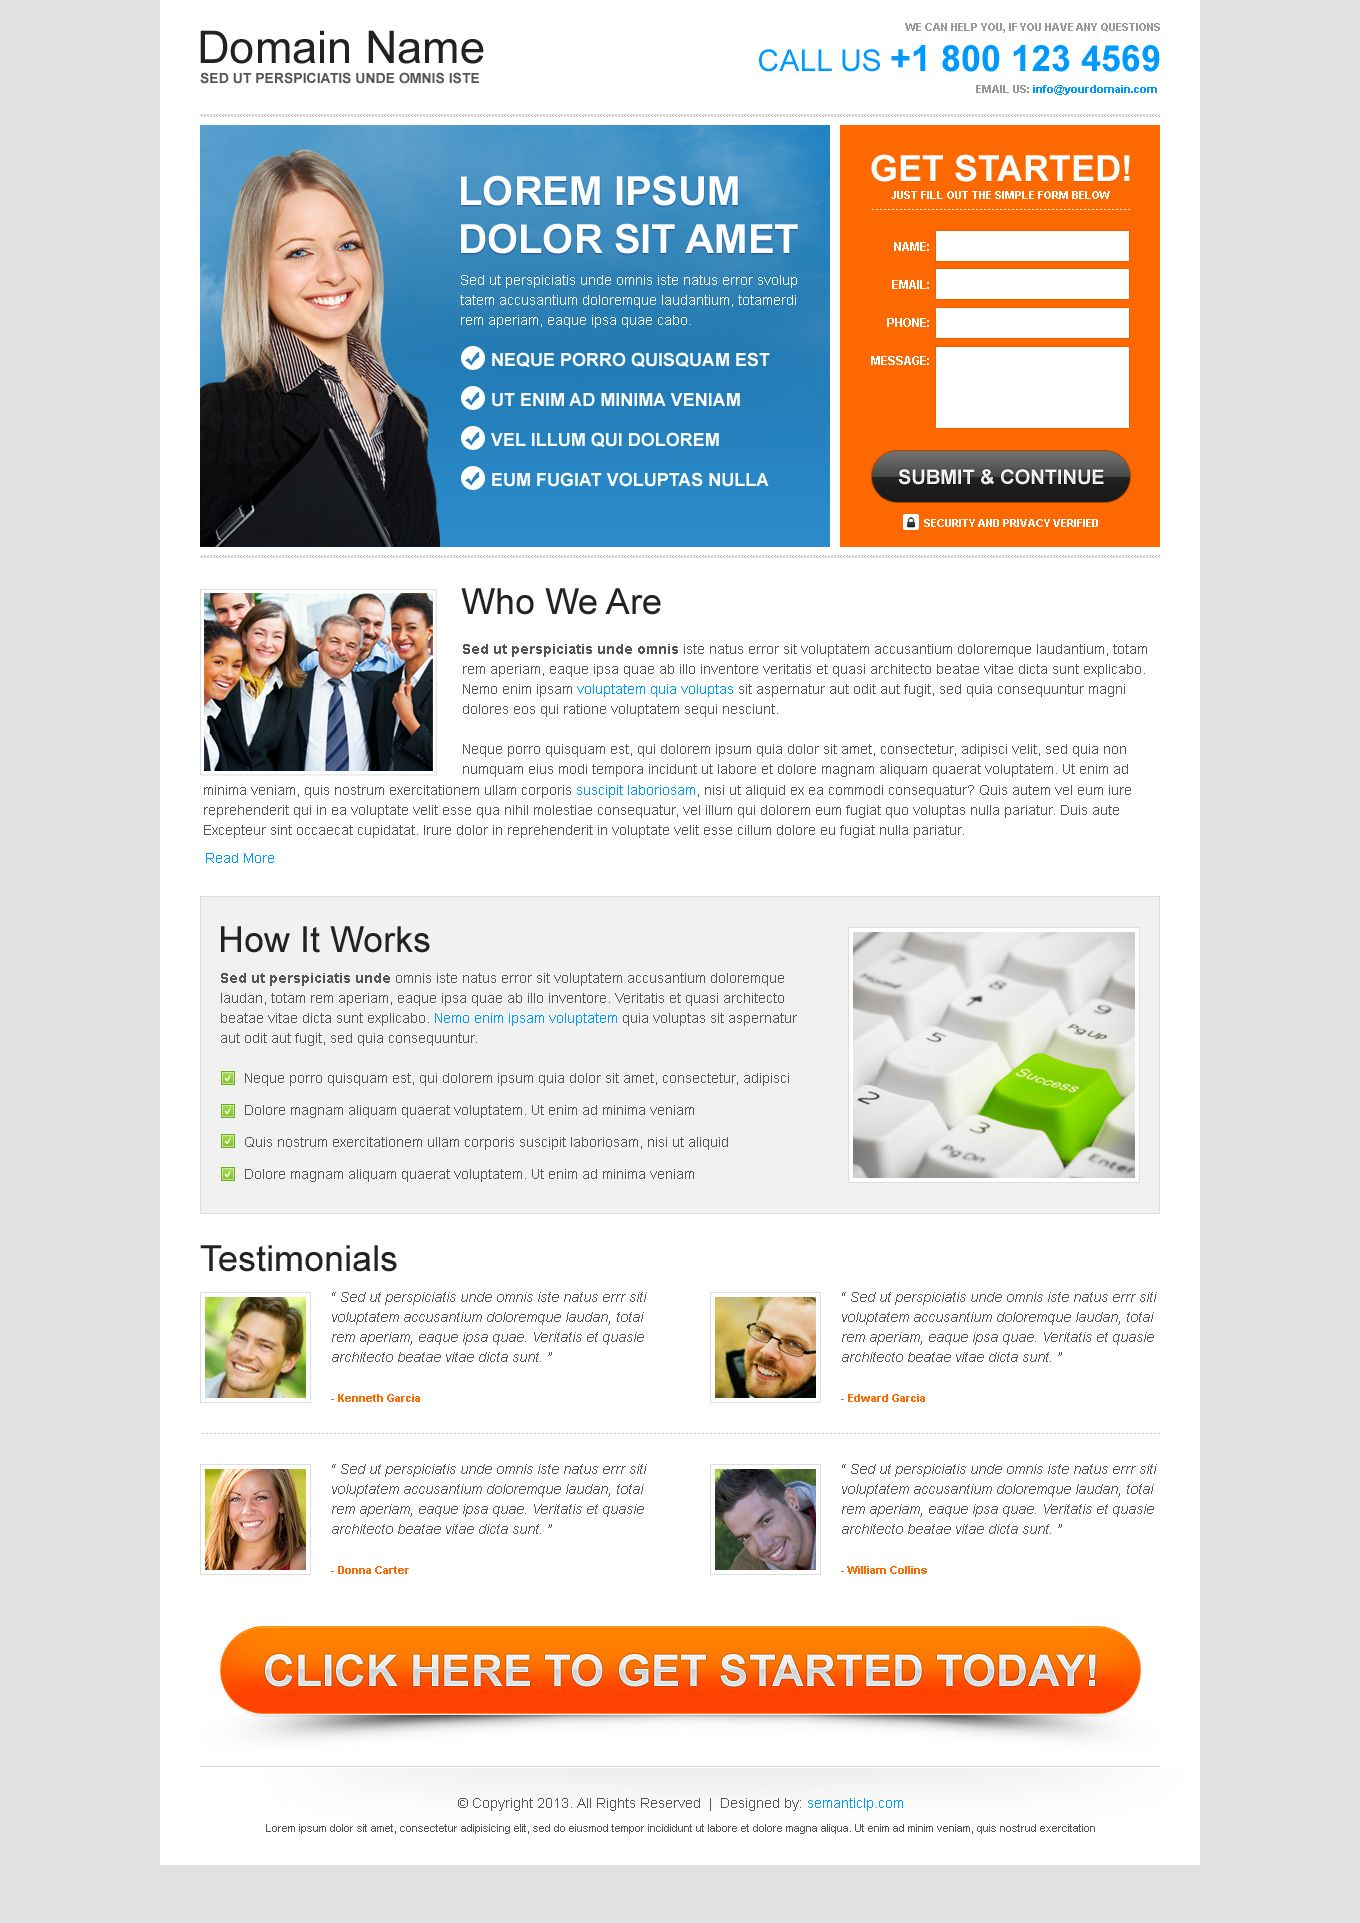 Free generic landing page design download from semanticlp.com ...